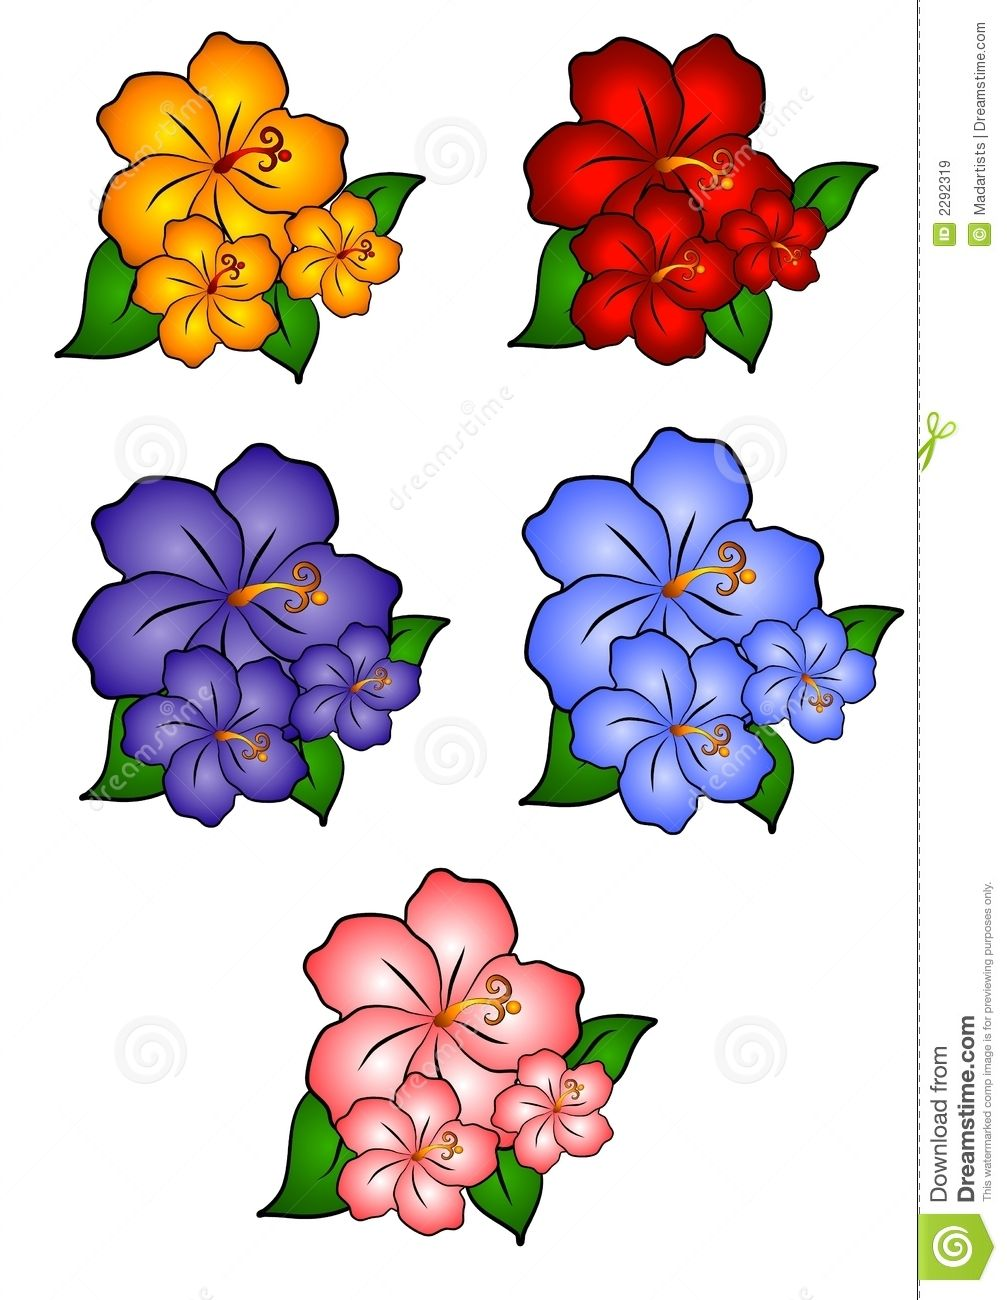 flower clip art free hawaiian flower border clip art 5 hawaiian rh pinterest com hawaii clip art pictures hawaiian clip art borders